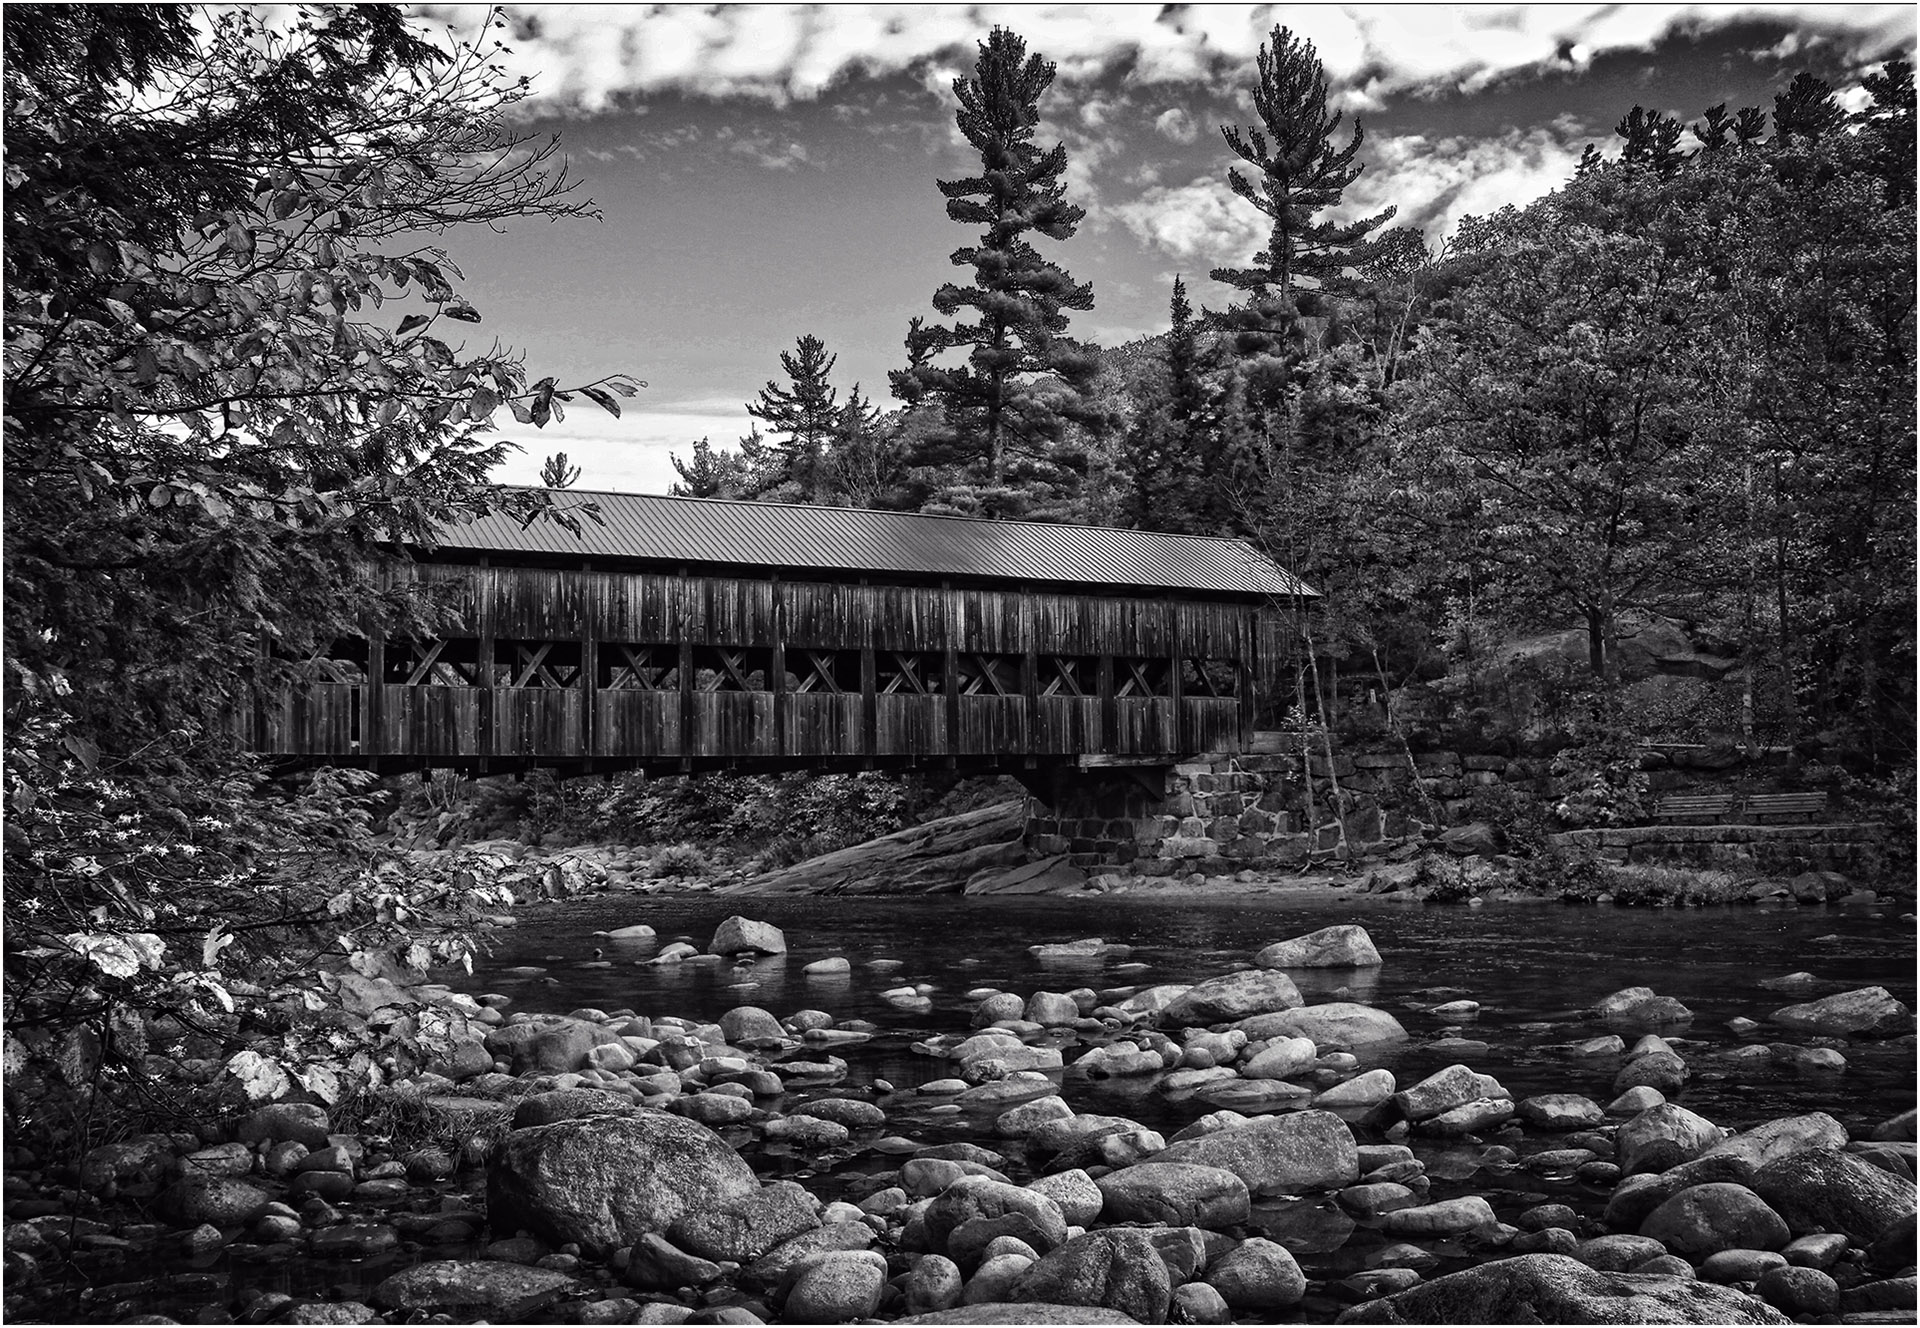 New England Covered Bridge - Monochrome Print (Open) - Name Withheld Per Request